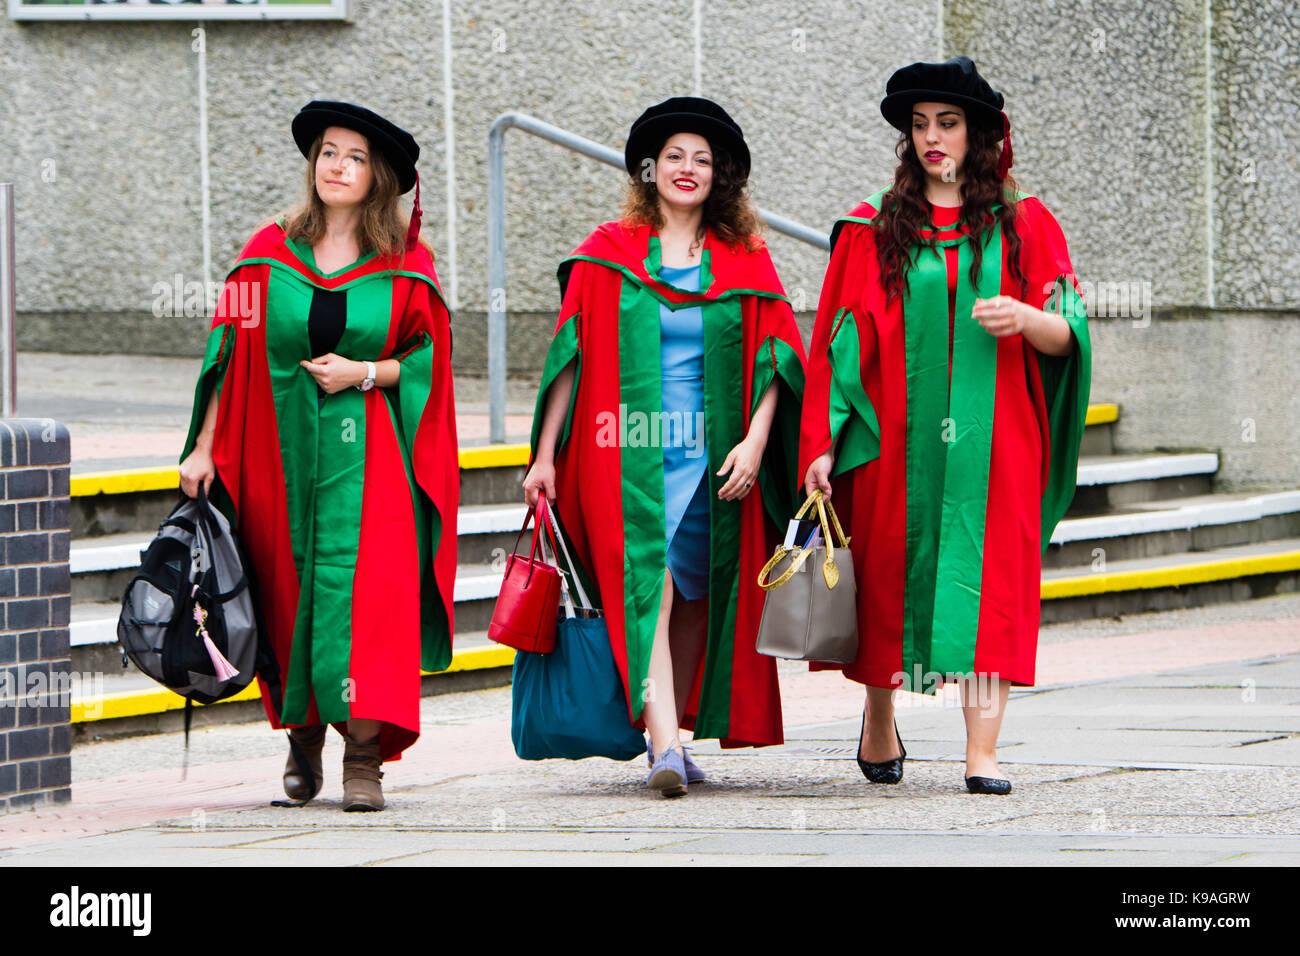 Phd Gown Stock Photos & Phd Gown Stock Images - Alamy